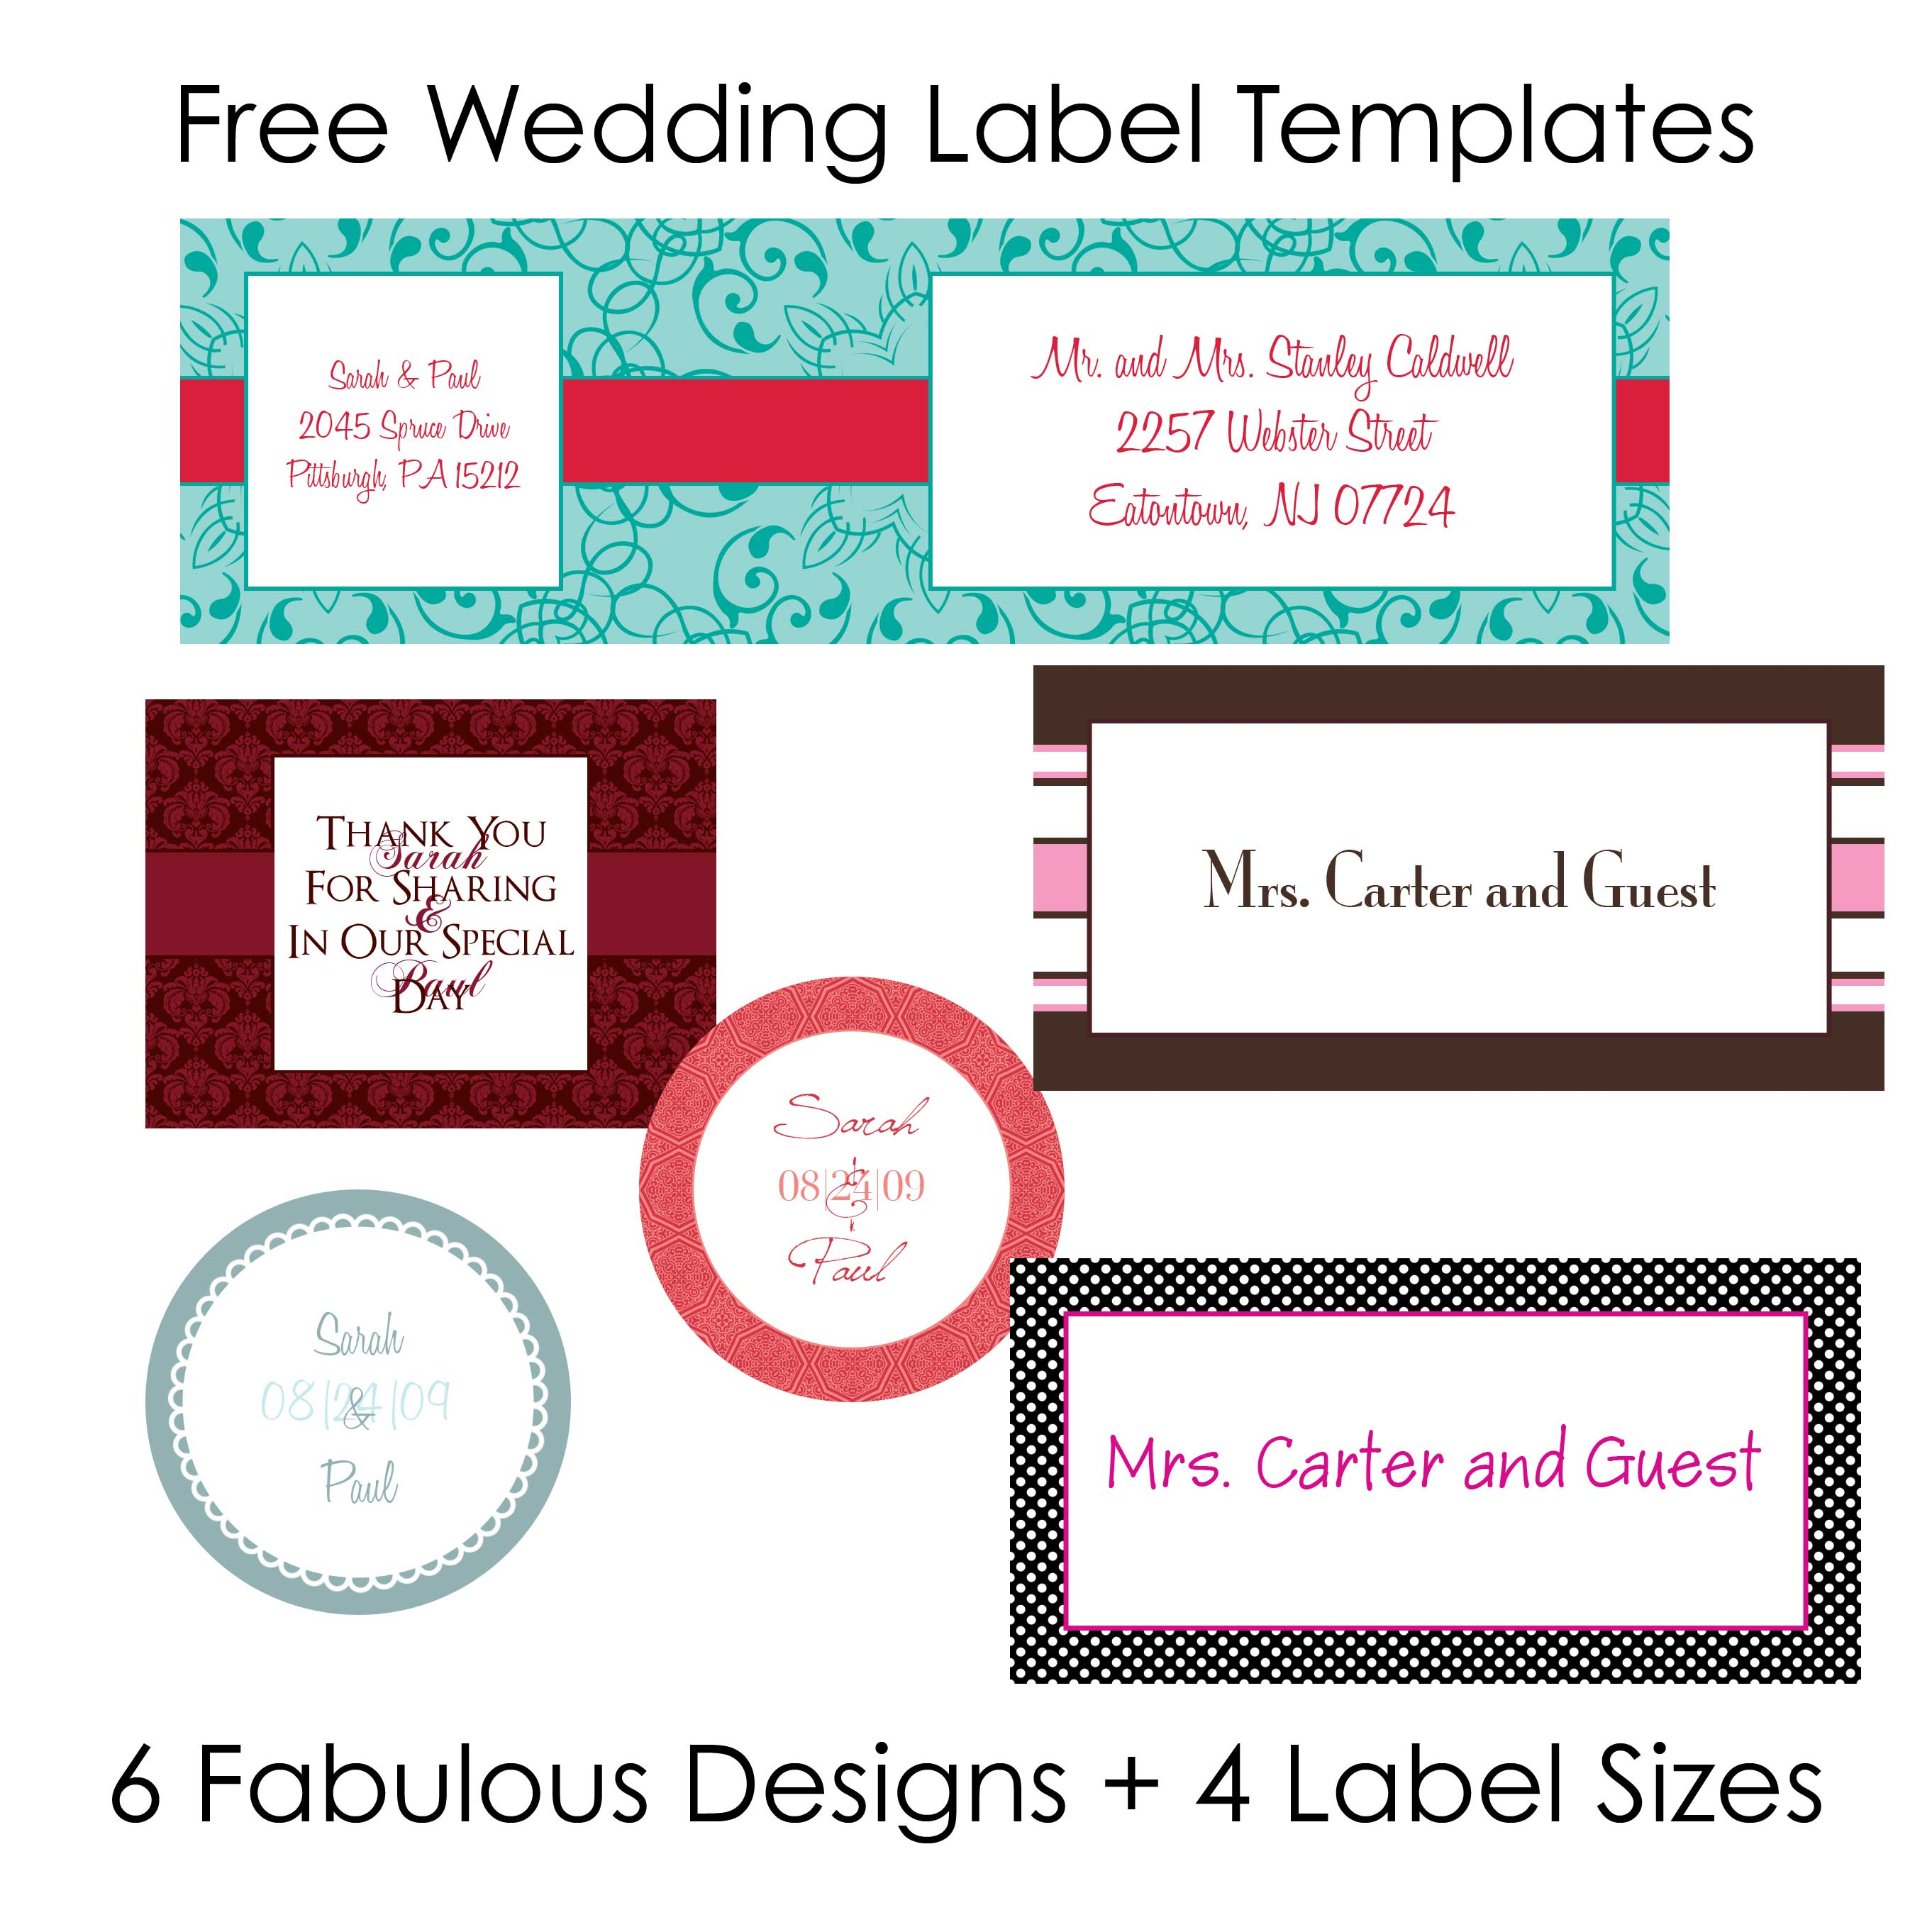 18 free label designs images free vintage label template downloads free design label for Free mail label templates